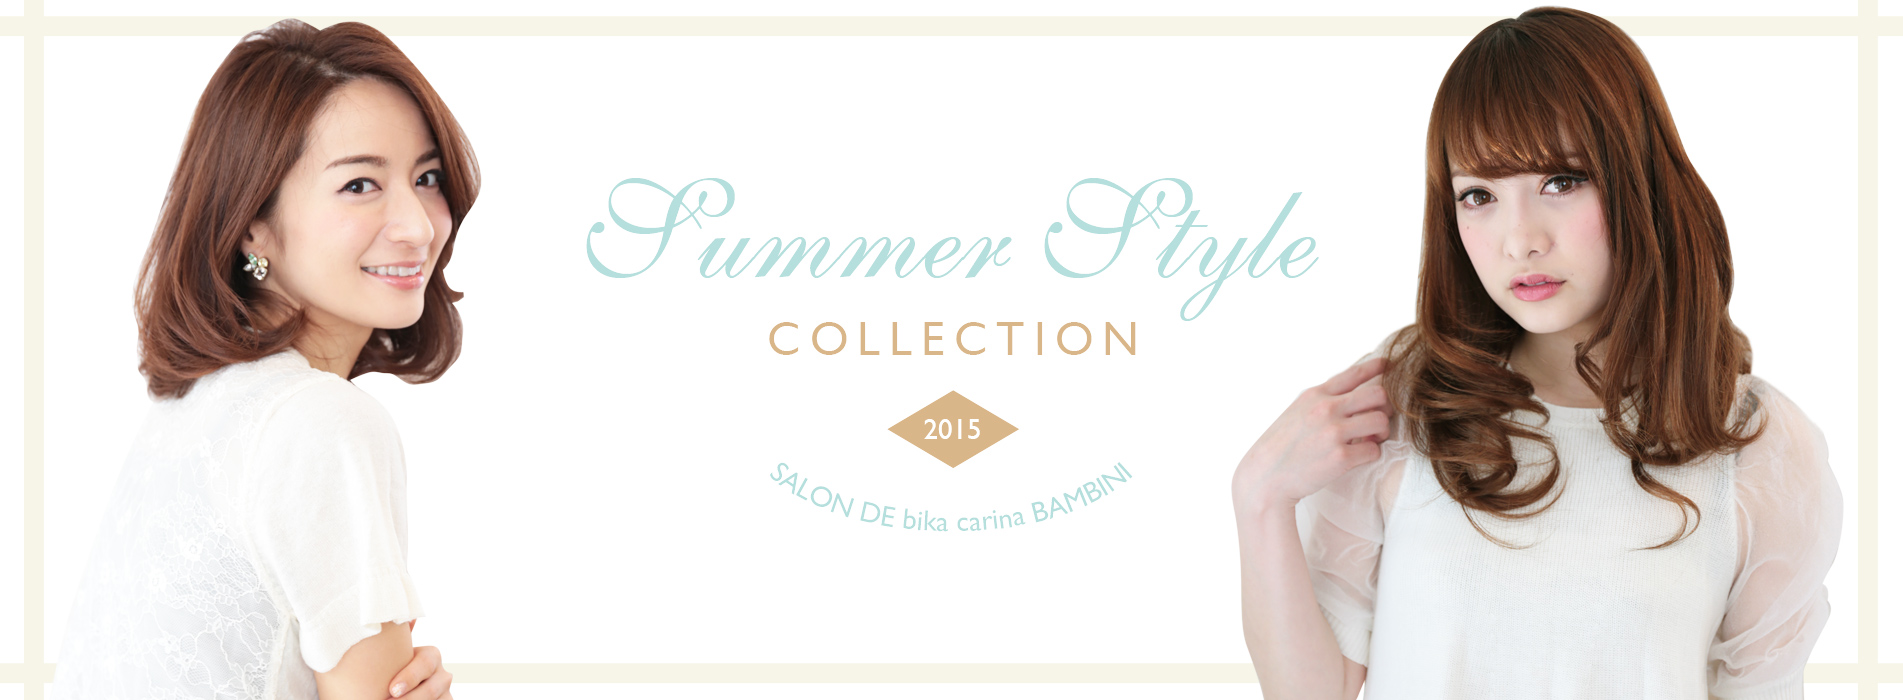 Summer Style COLLCTION 2015